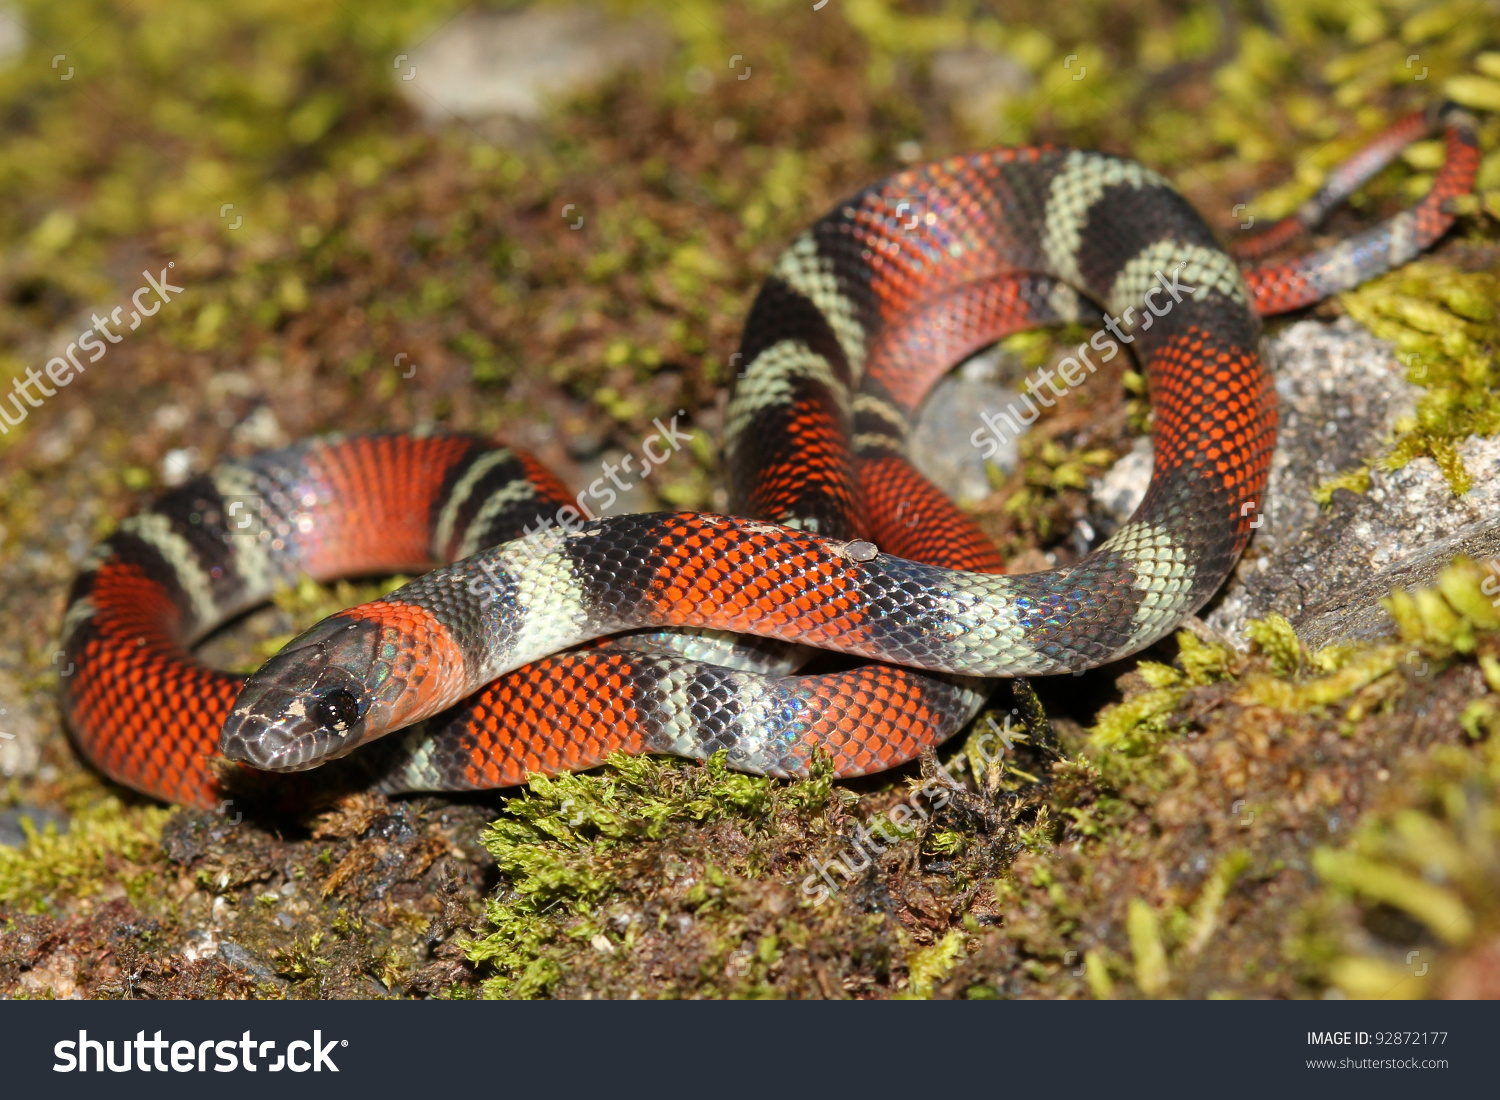 False Coral Snake clipart #5, Download drawings